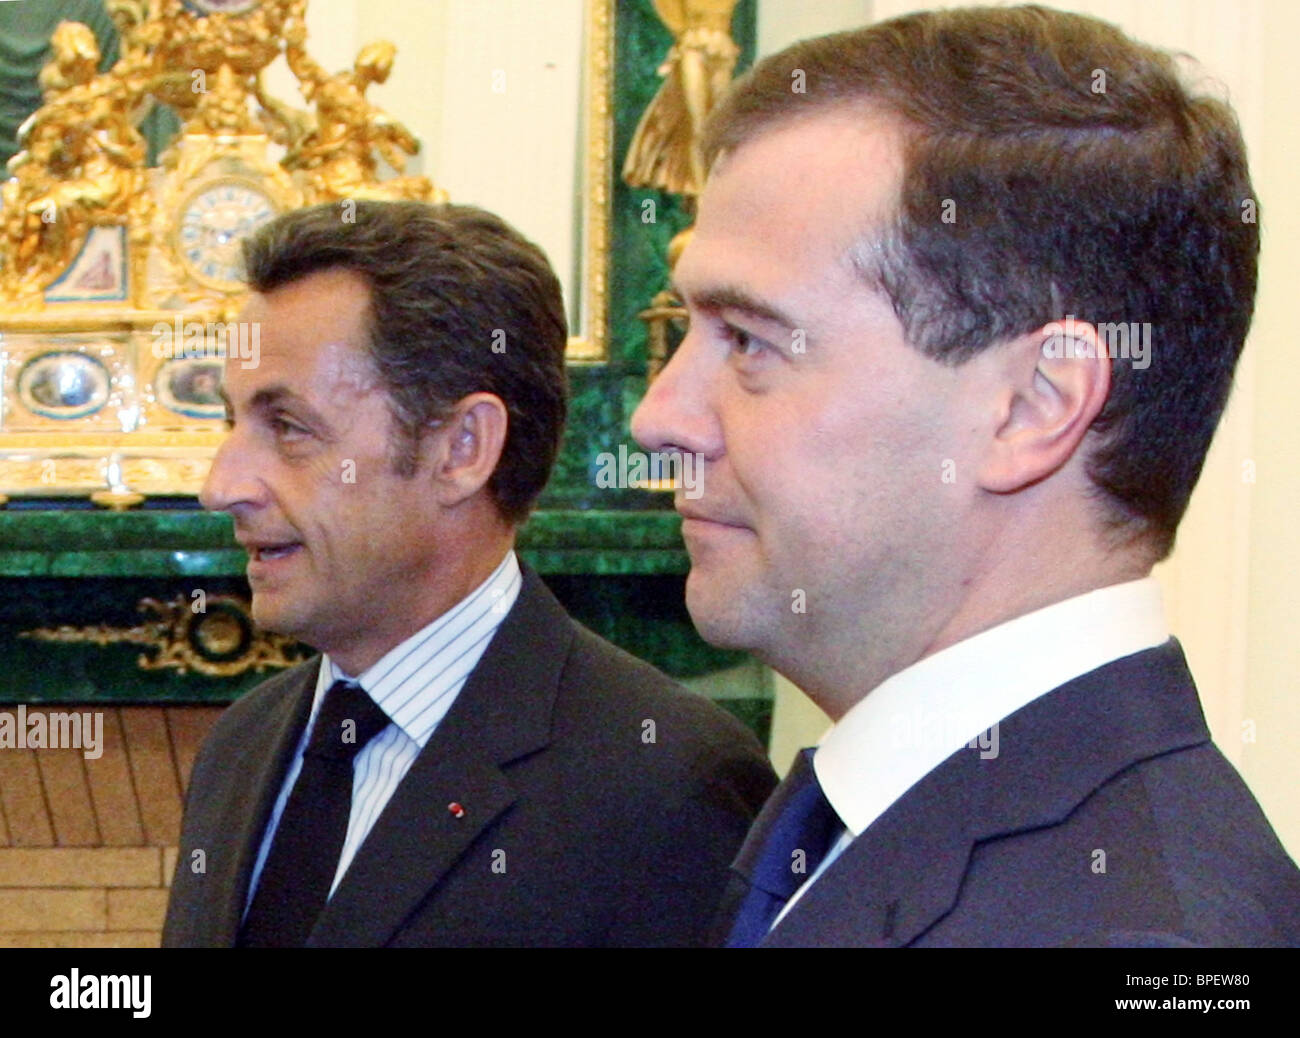 Russian and French presidents meet in Moscow - Stock Image